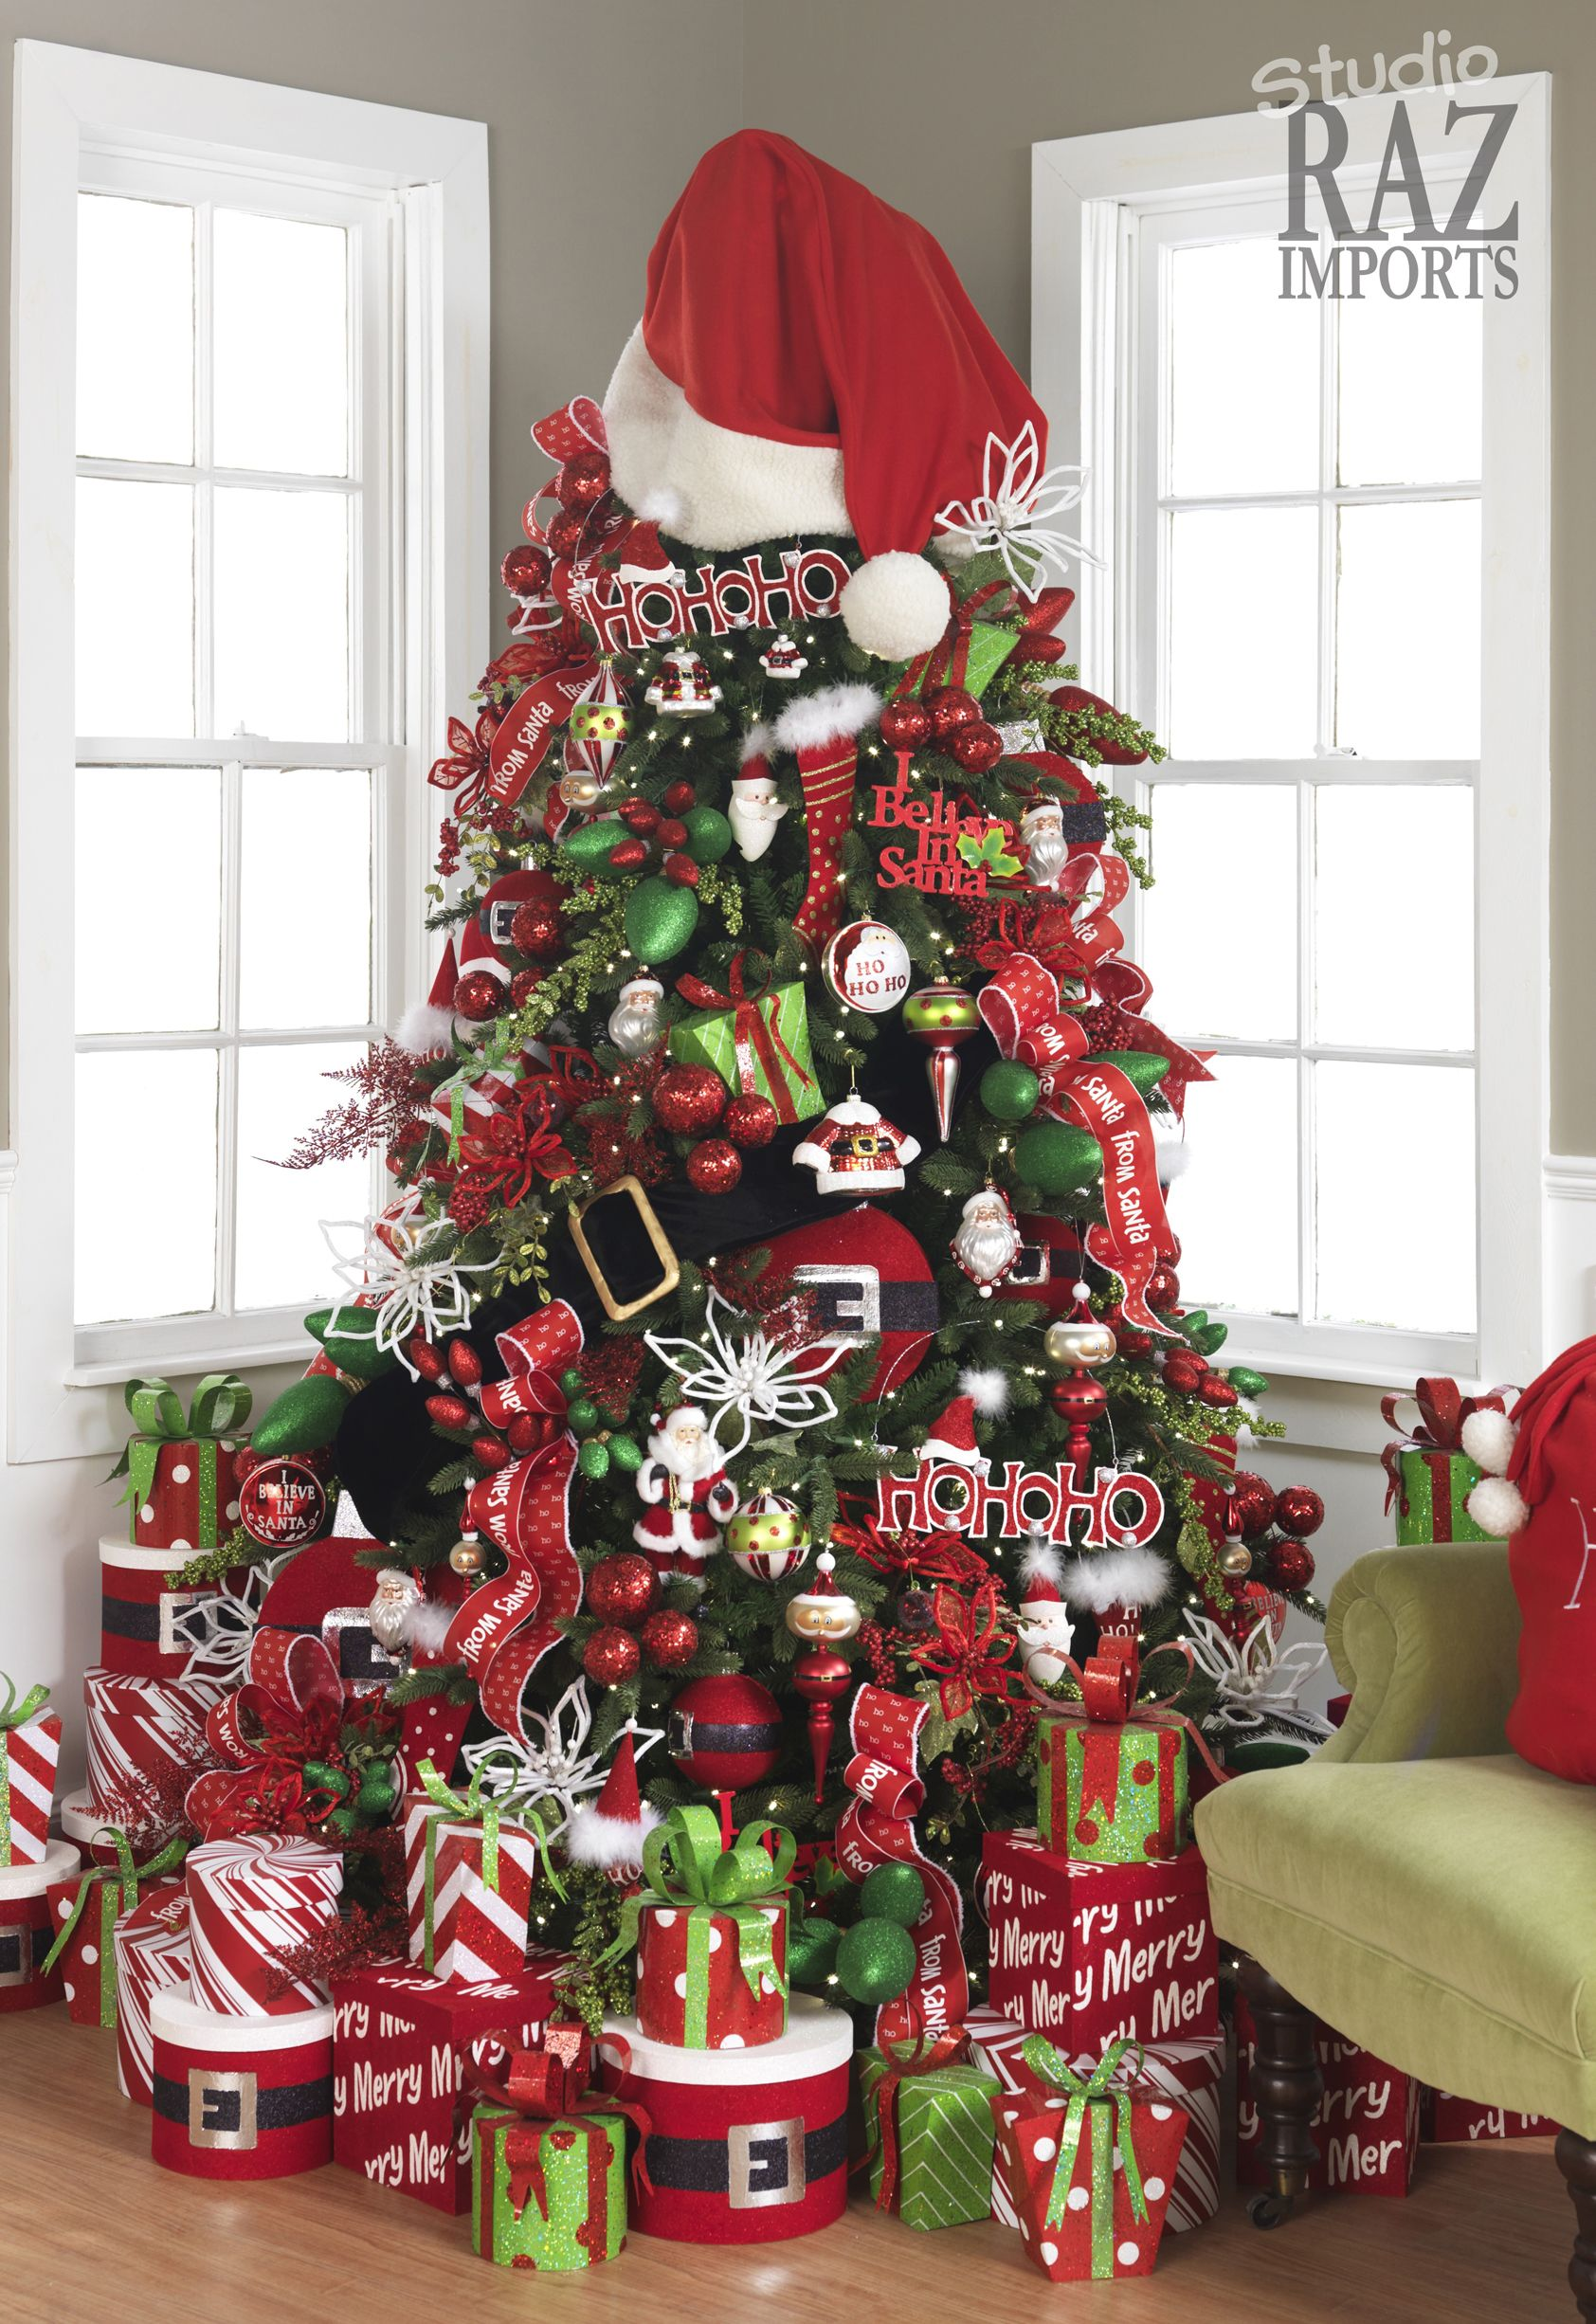 Christmas tree decorations ideas red and gold - Choosing A Christmas Tree Theme